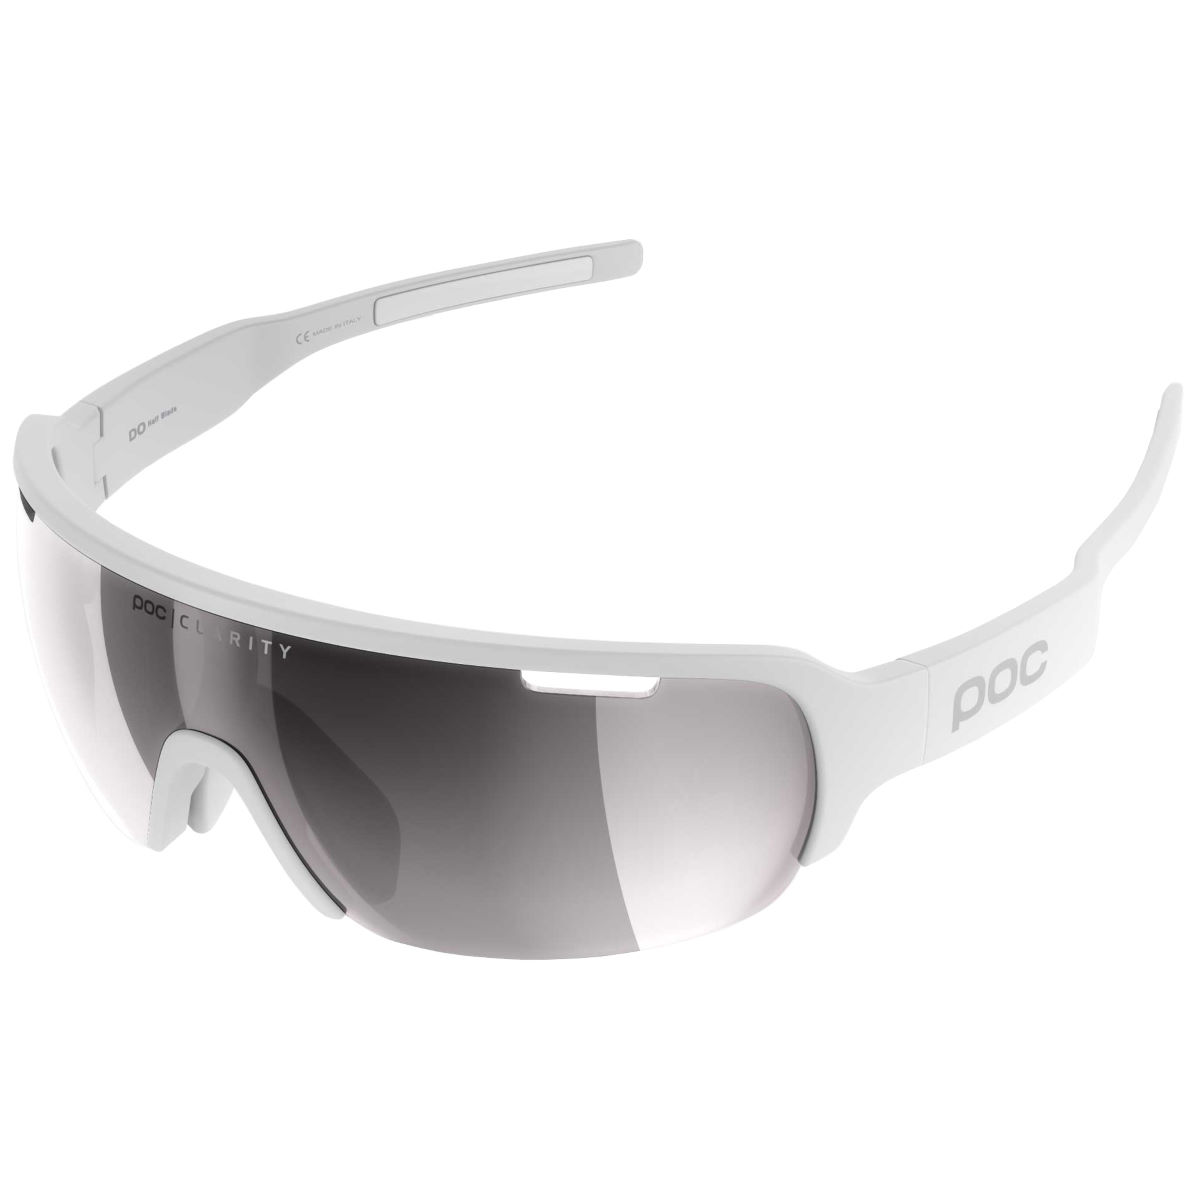 POC POC Do Half Blade Clarity AVIP Sunglasses   Sunglasses